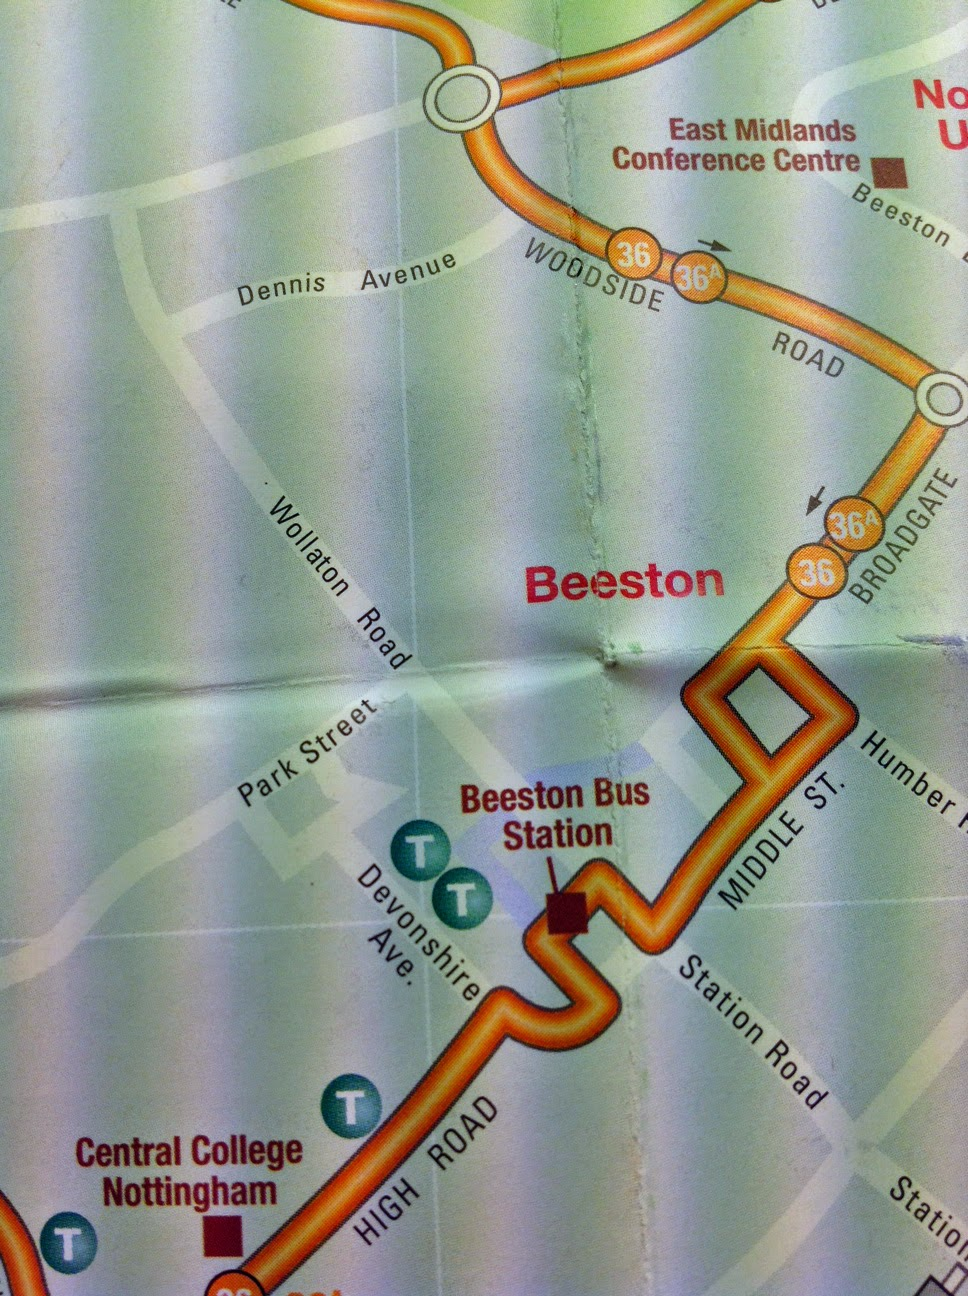 BeestonWeek Beeston transport connections direct and the